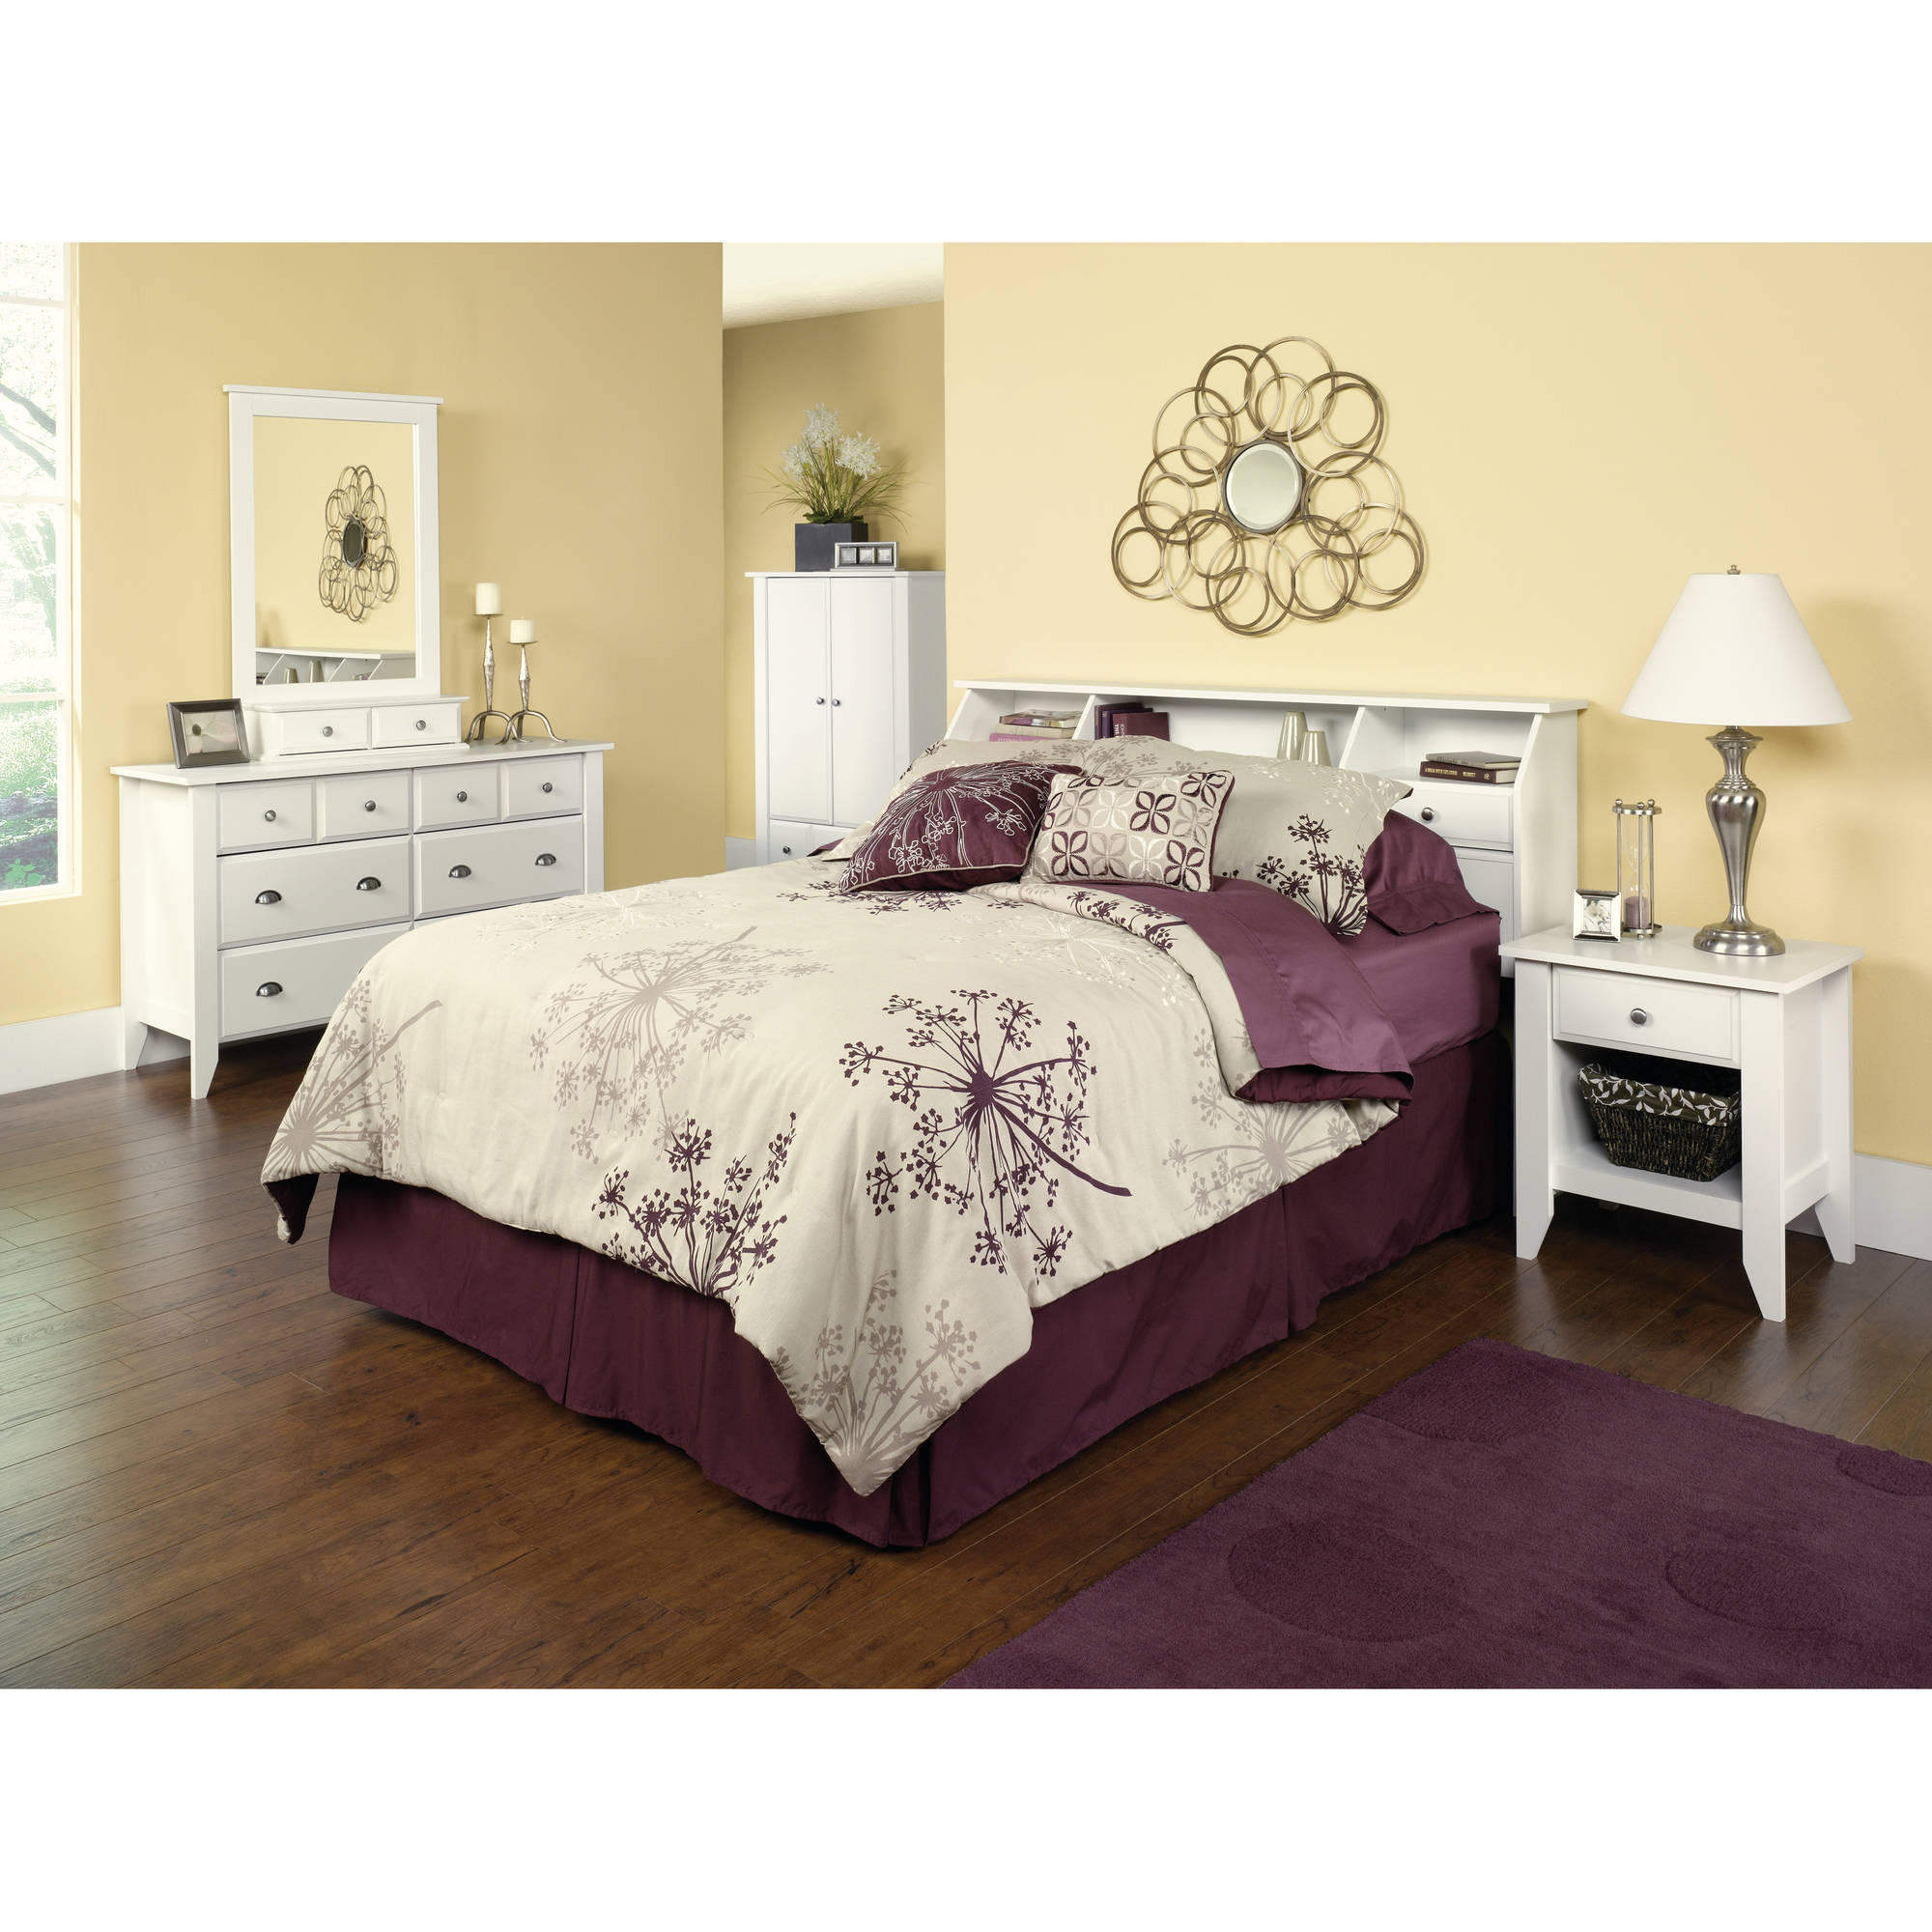 Storage bedroom furniture white full queen headboard - Bedroom furniture bookcase headboard ...